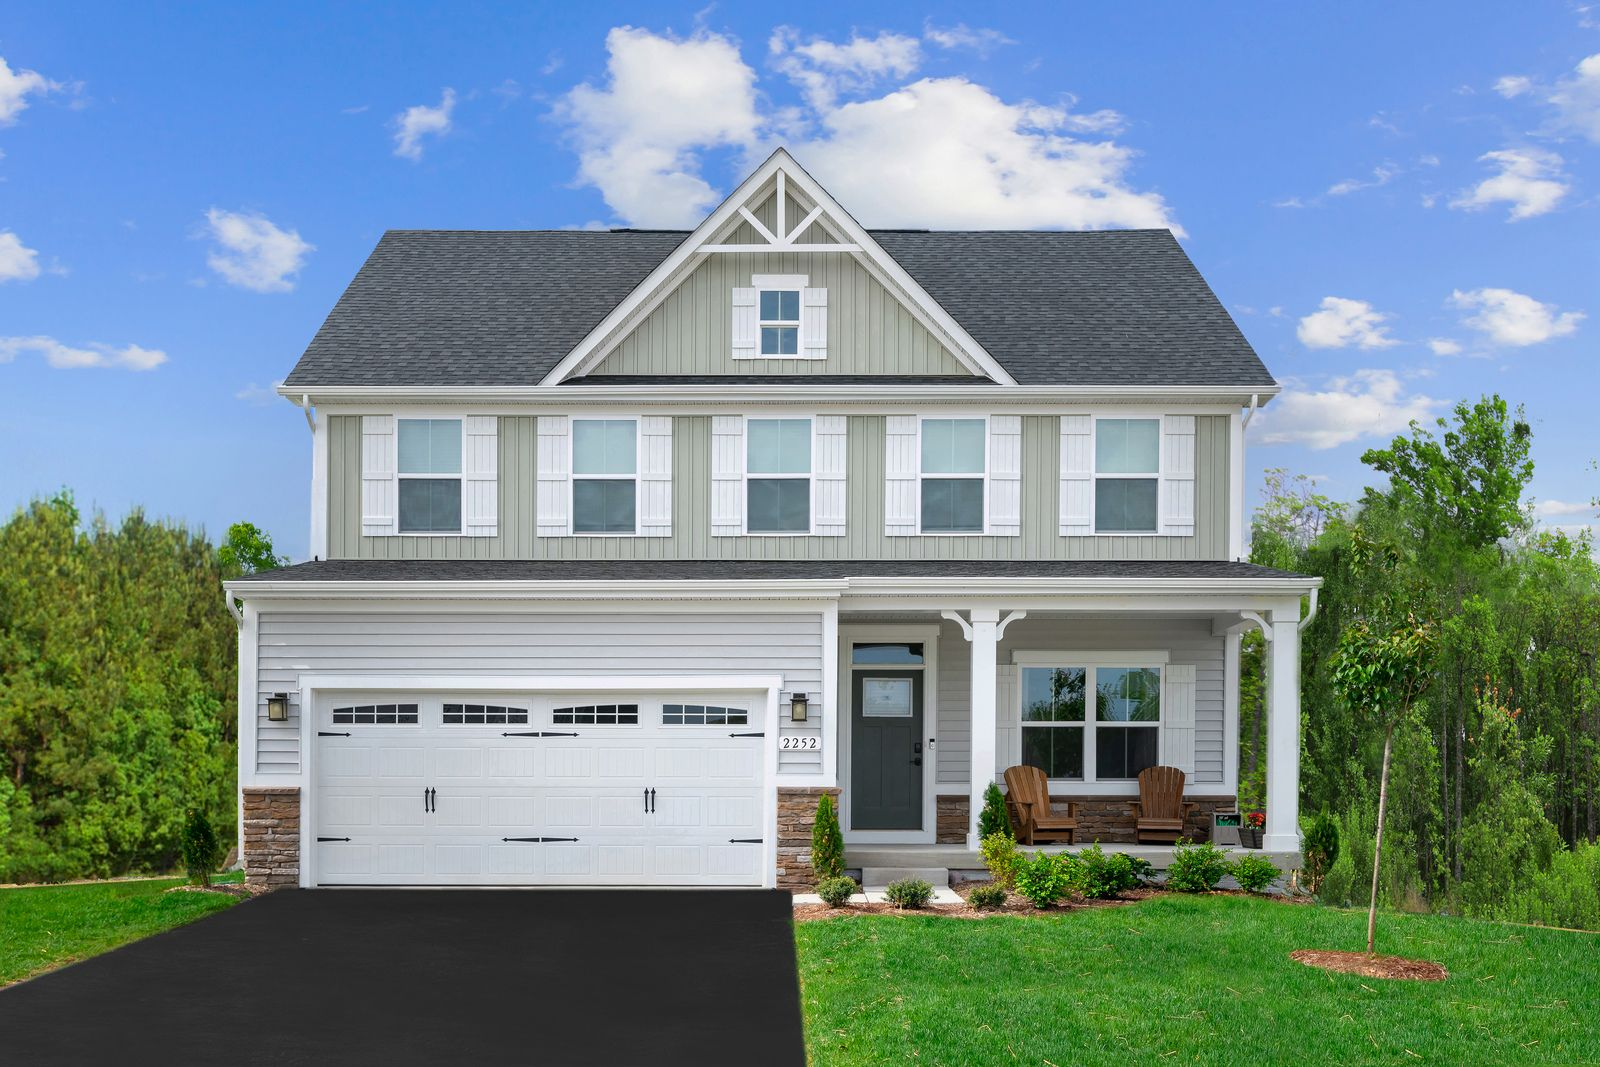 A Place to Call Home - 20 Homes Sold in Our 1st Week!